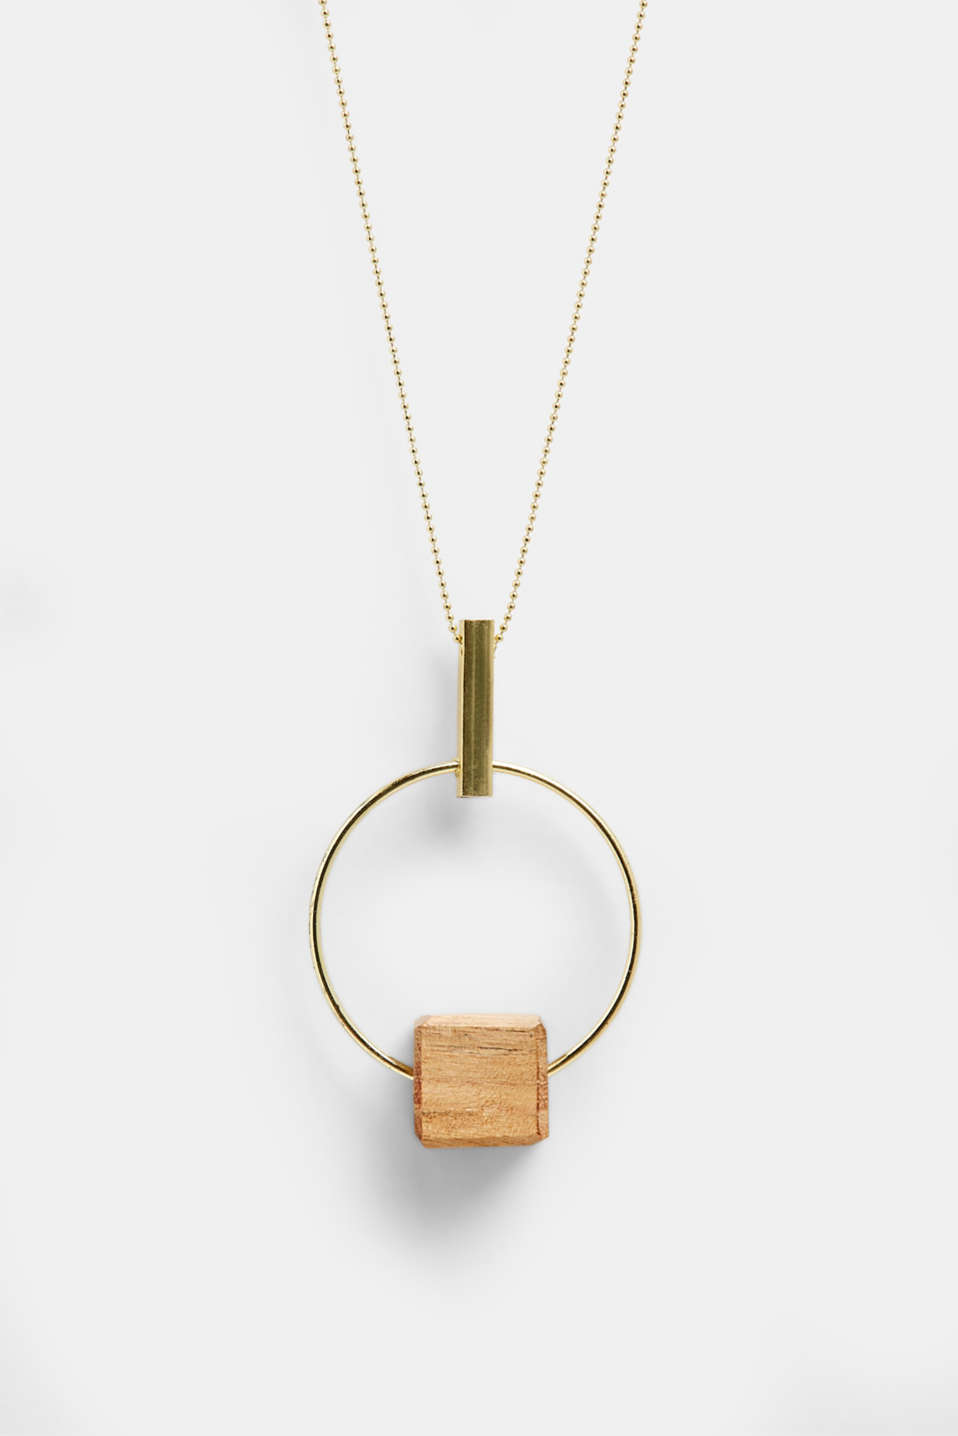 Esprit - Long necklace with a ring pendant and wooden dice